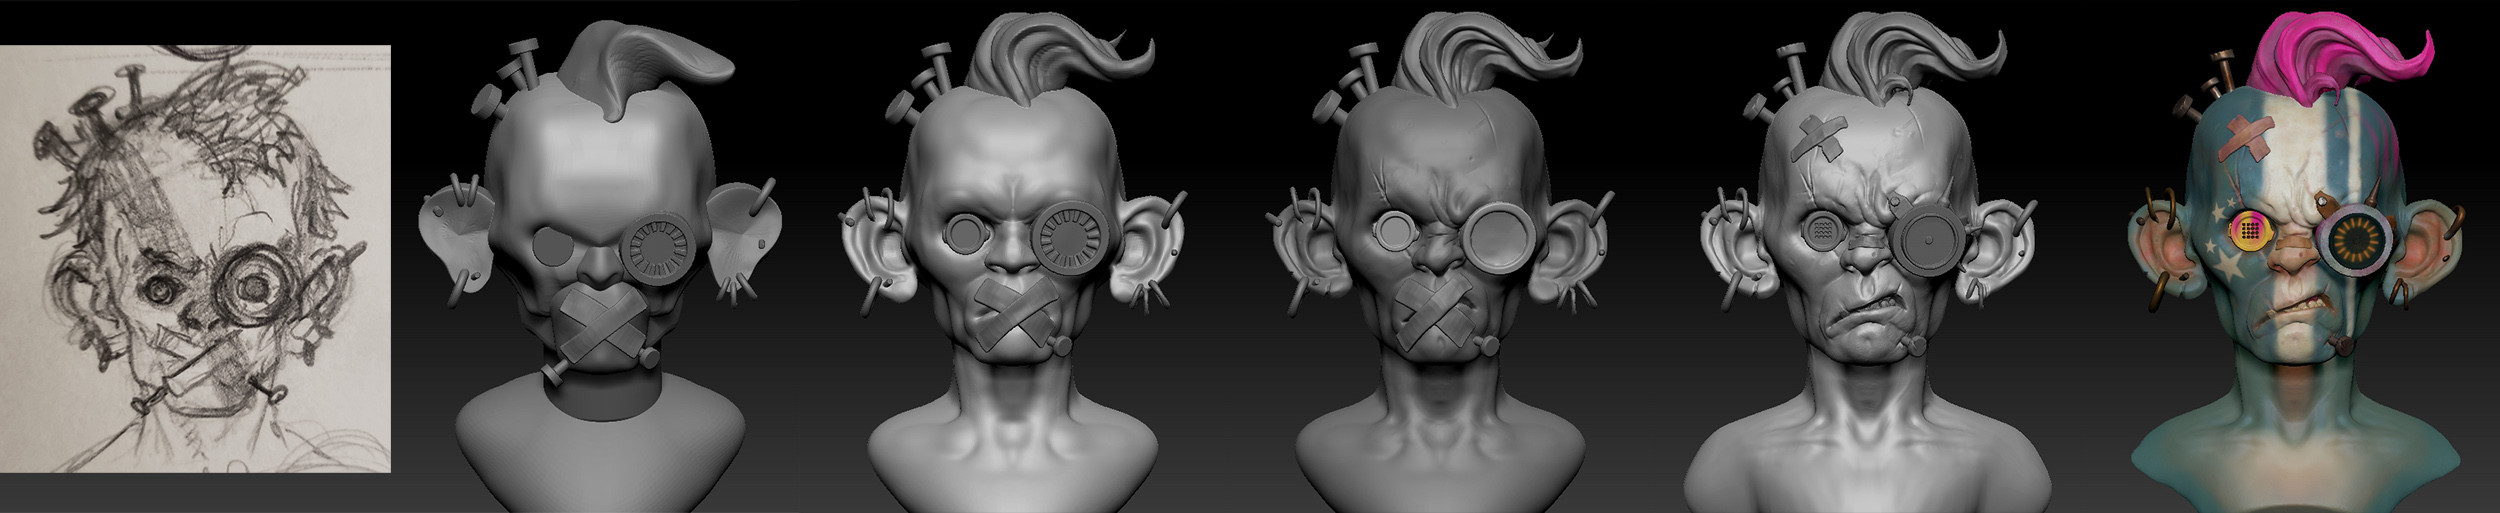 Zbrush 5day challenge steps